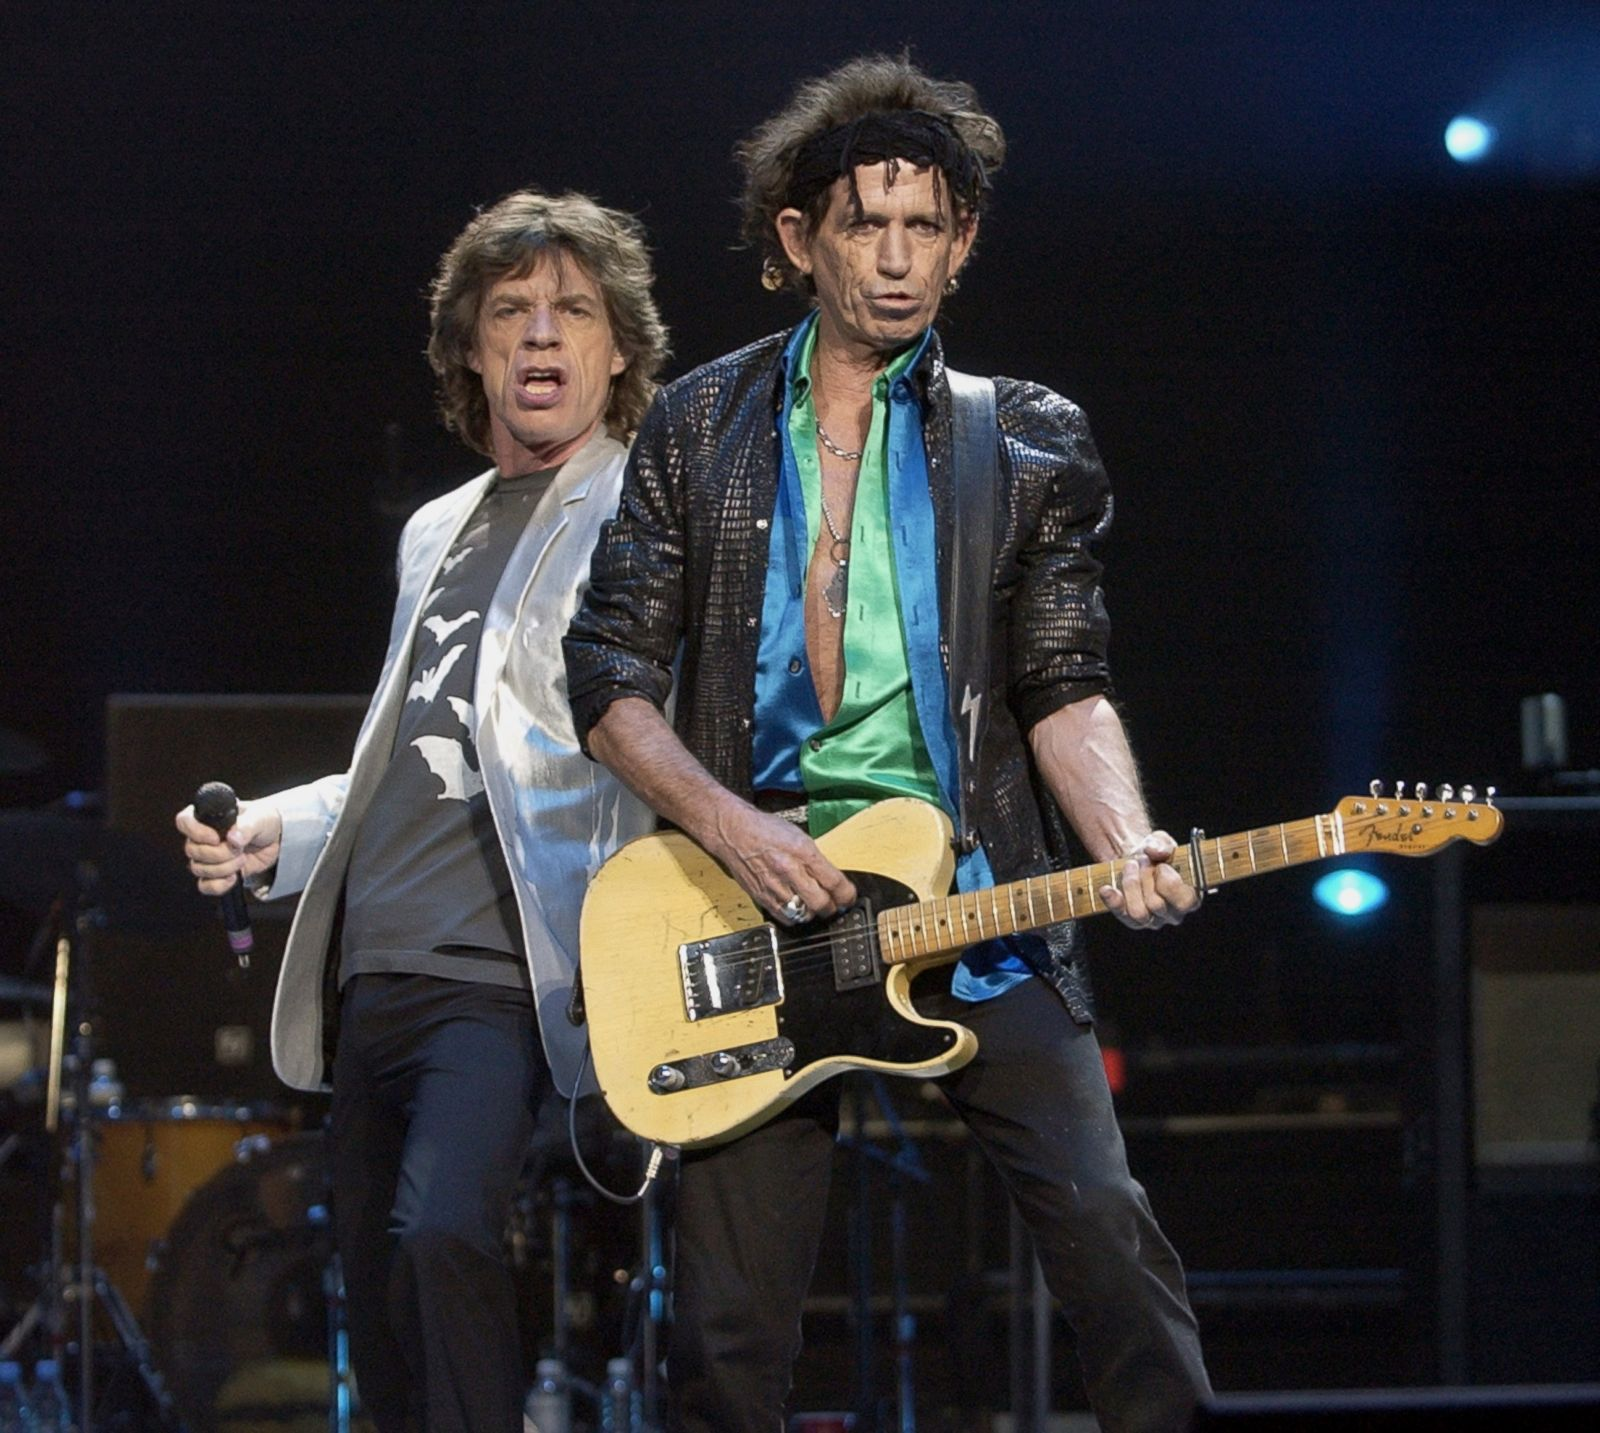 The Rolling Stones: Through The Years Photos - ABC News